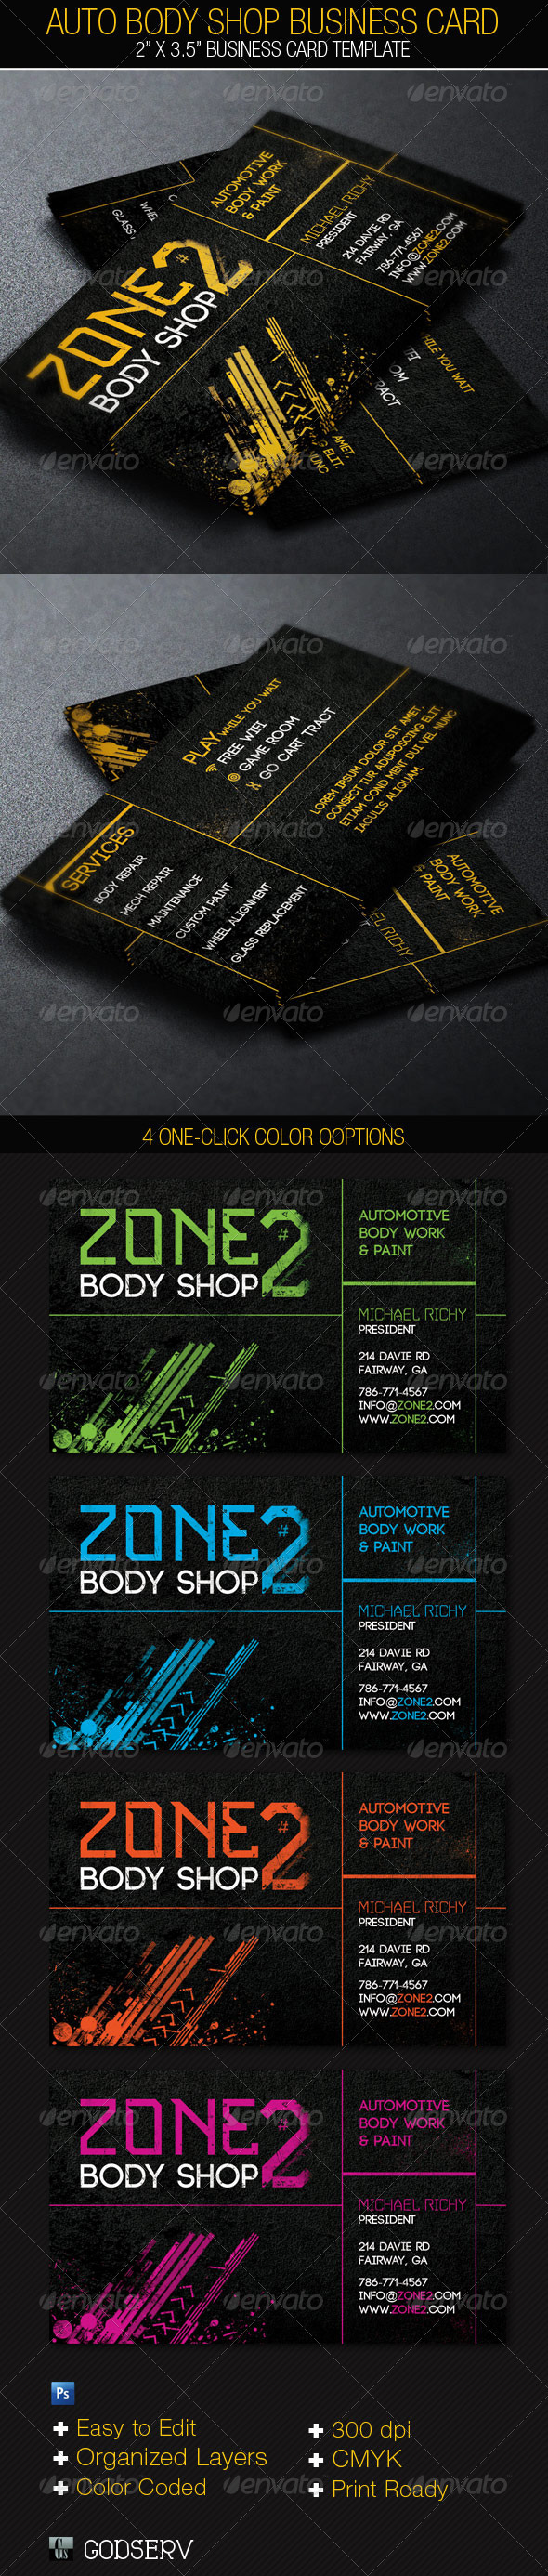 Auto body shop business card template on behance colourmoves